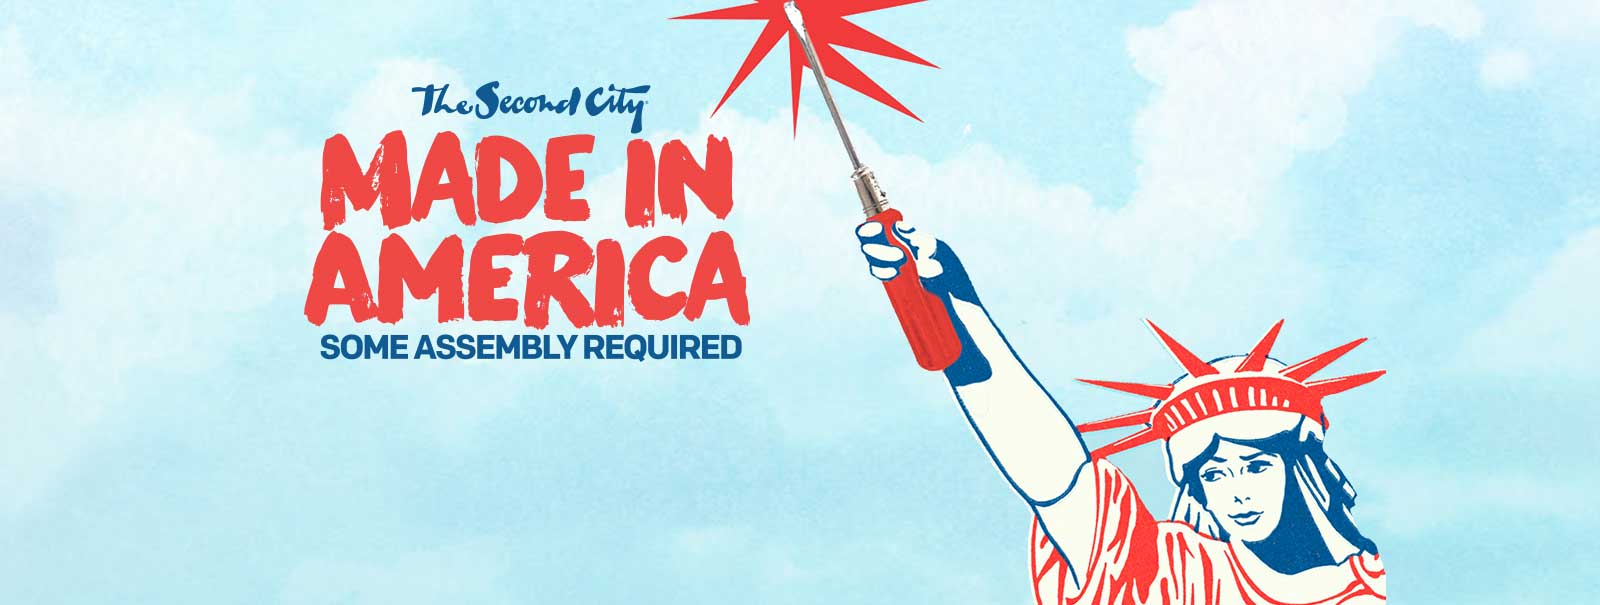 More Info - The Second City: Made in America (Some Assembly Required)